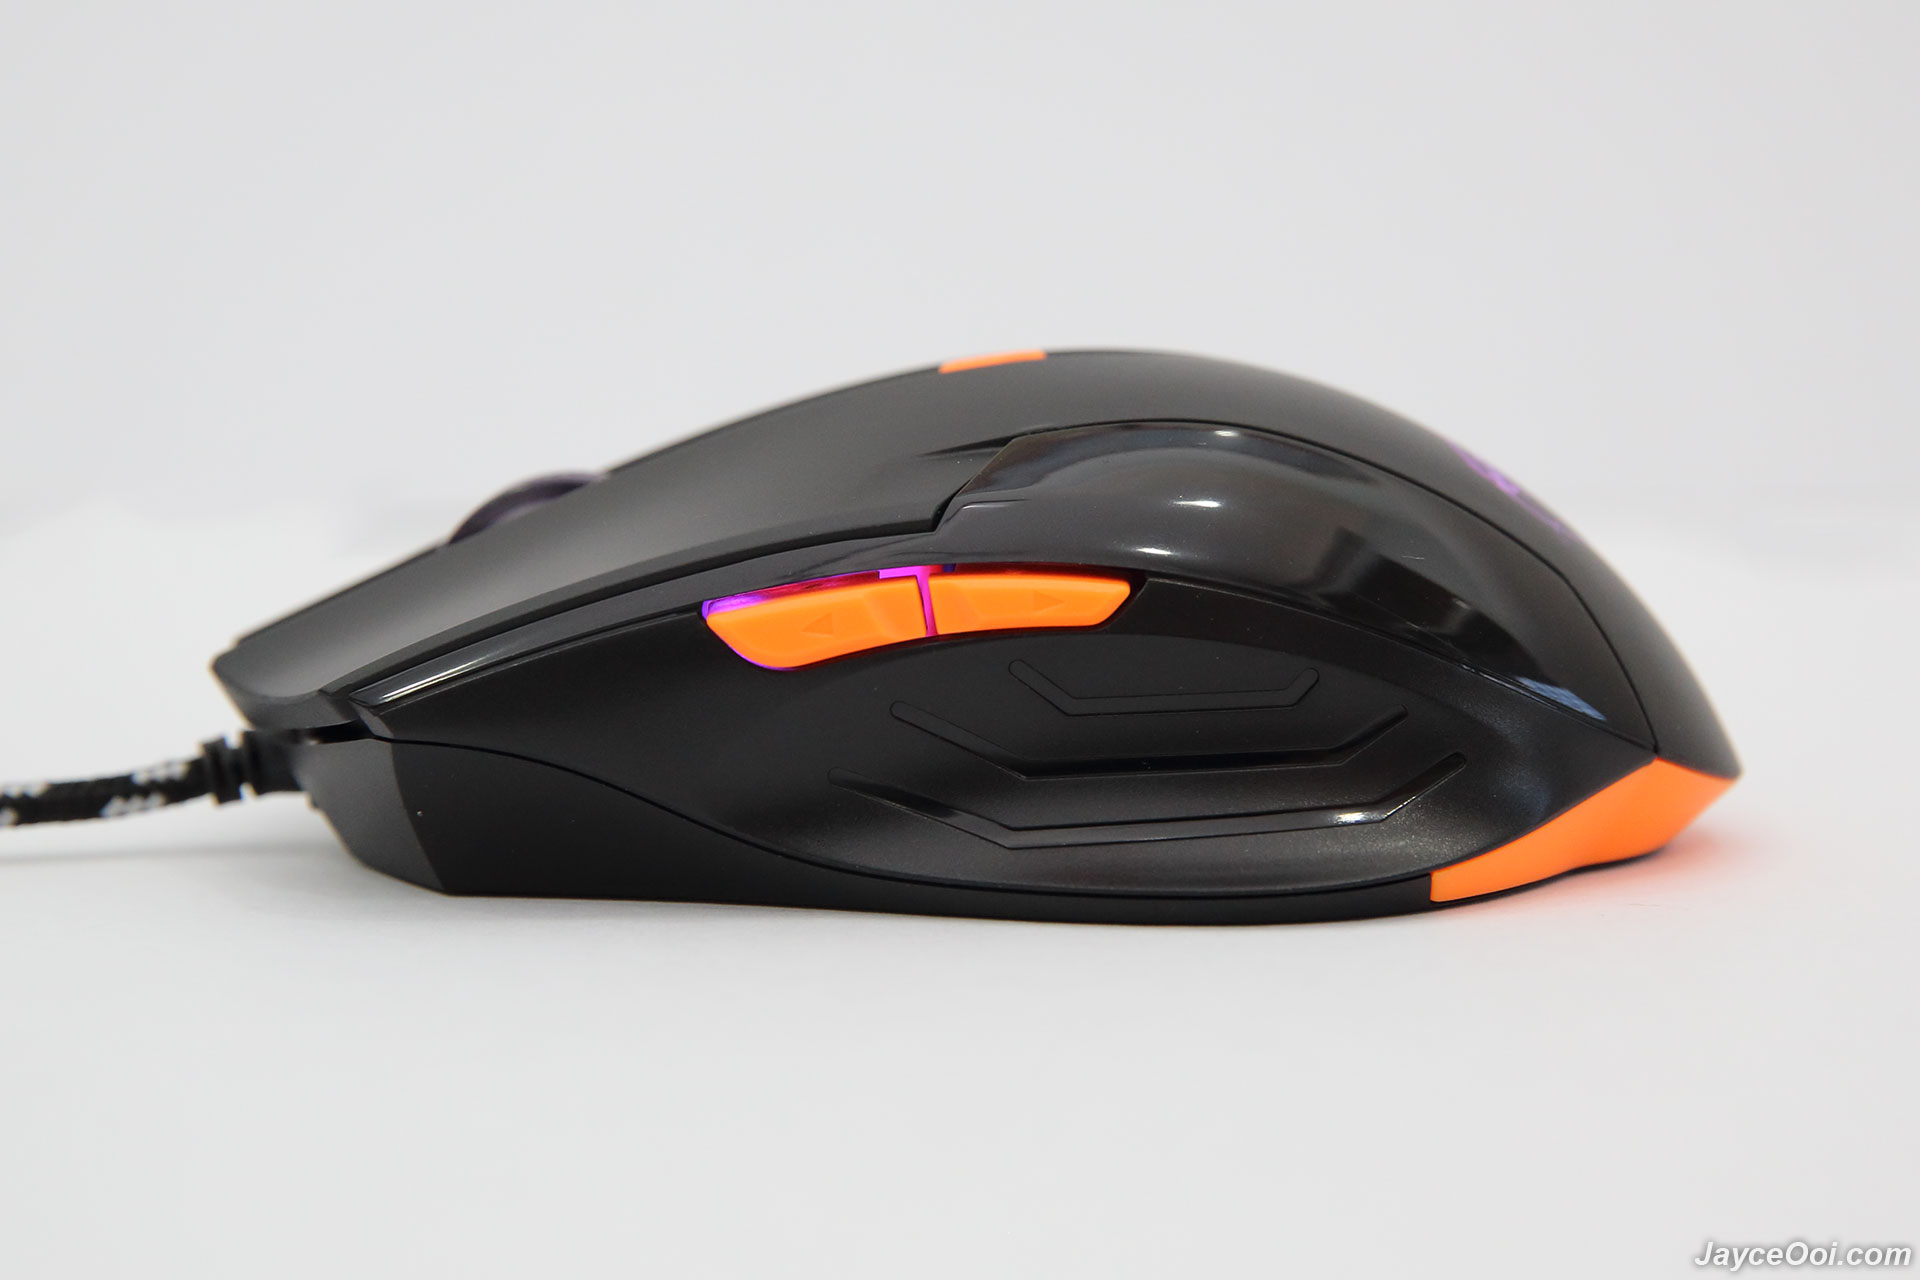 Imperion Gamegear S200 Gaming Mouse Review - JayceOoi com